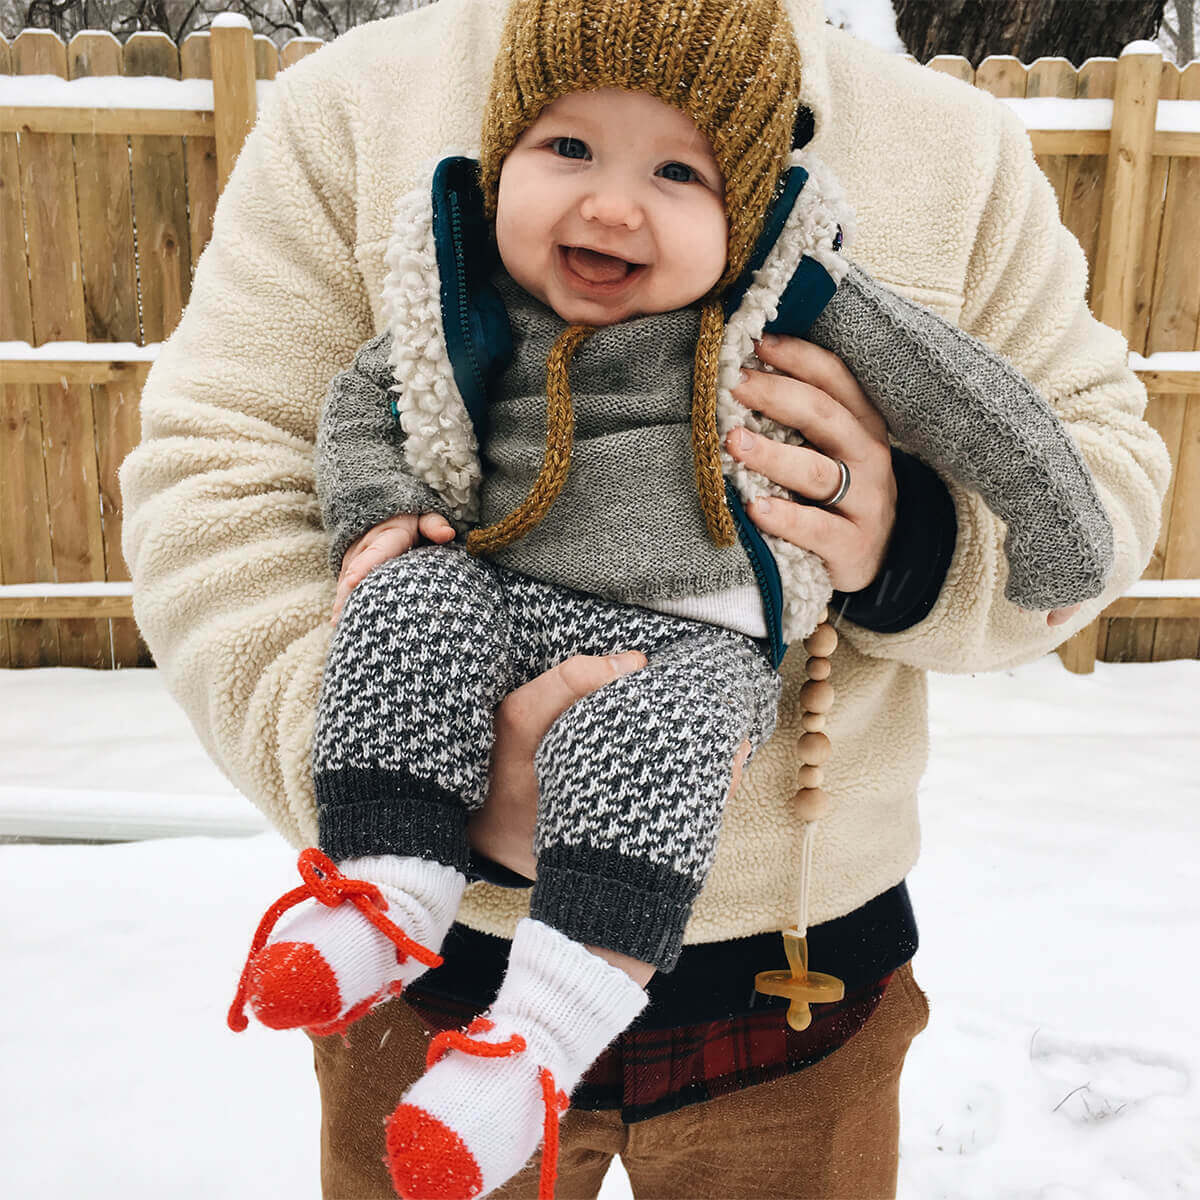 Baby in beanie outside laughing in dad's arms